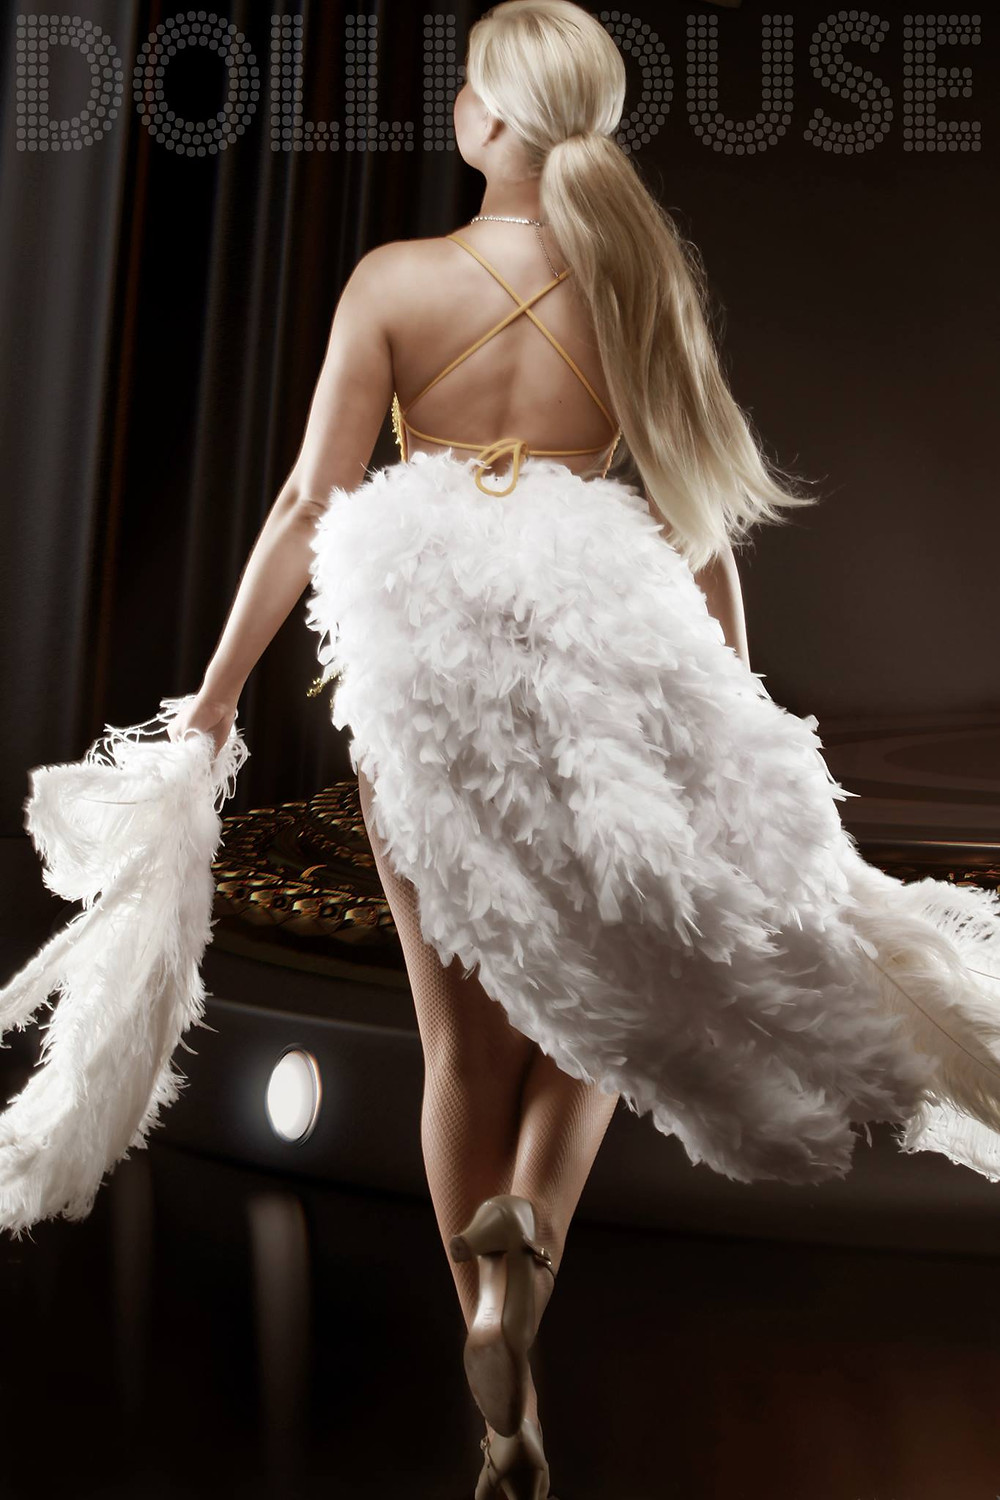 burlesque photo shoots by DollHouse Photography